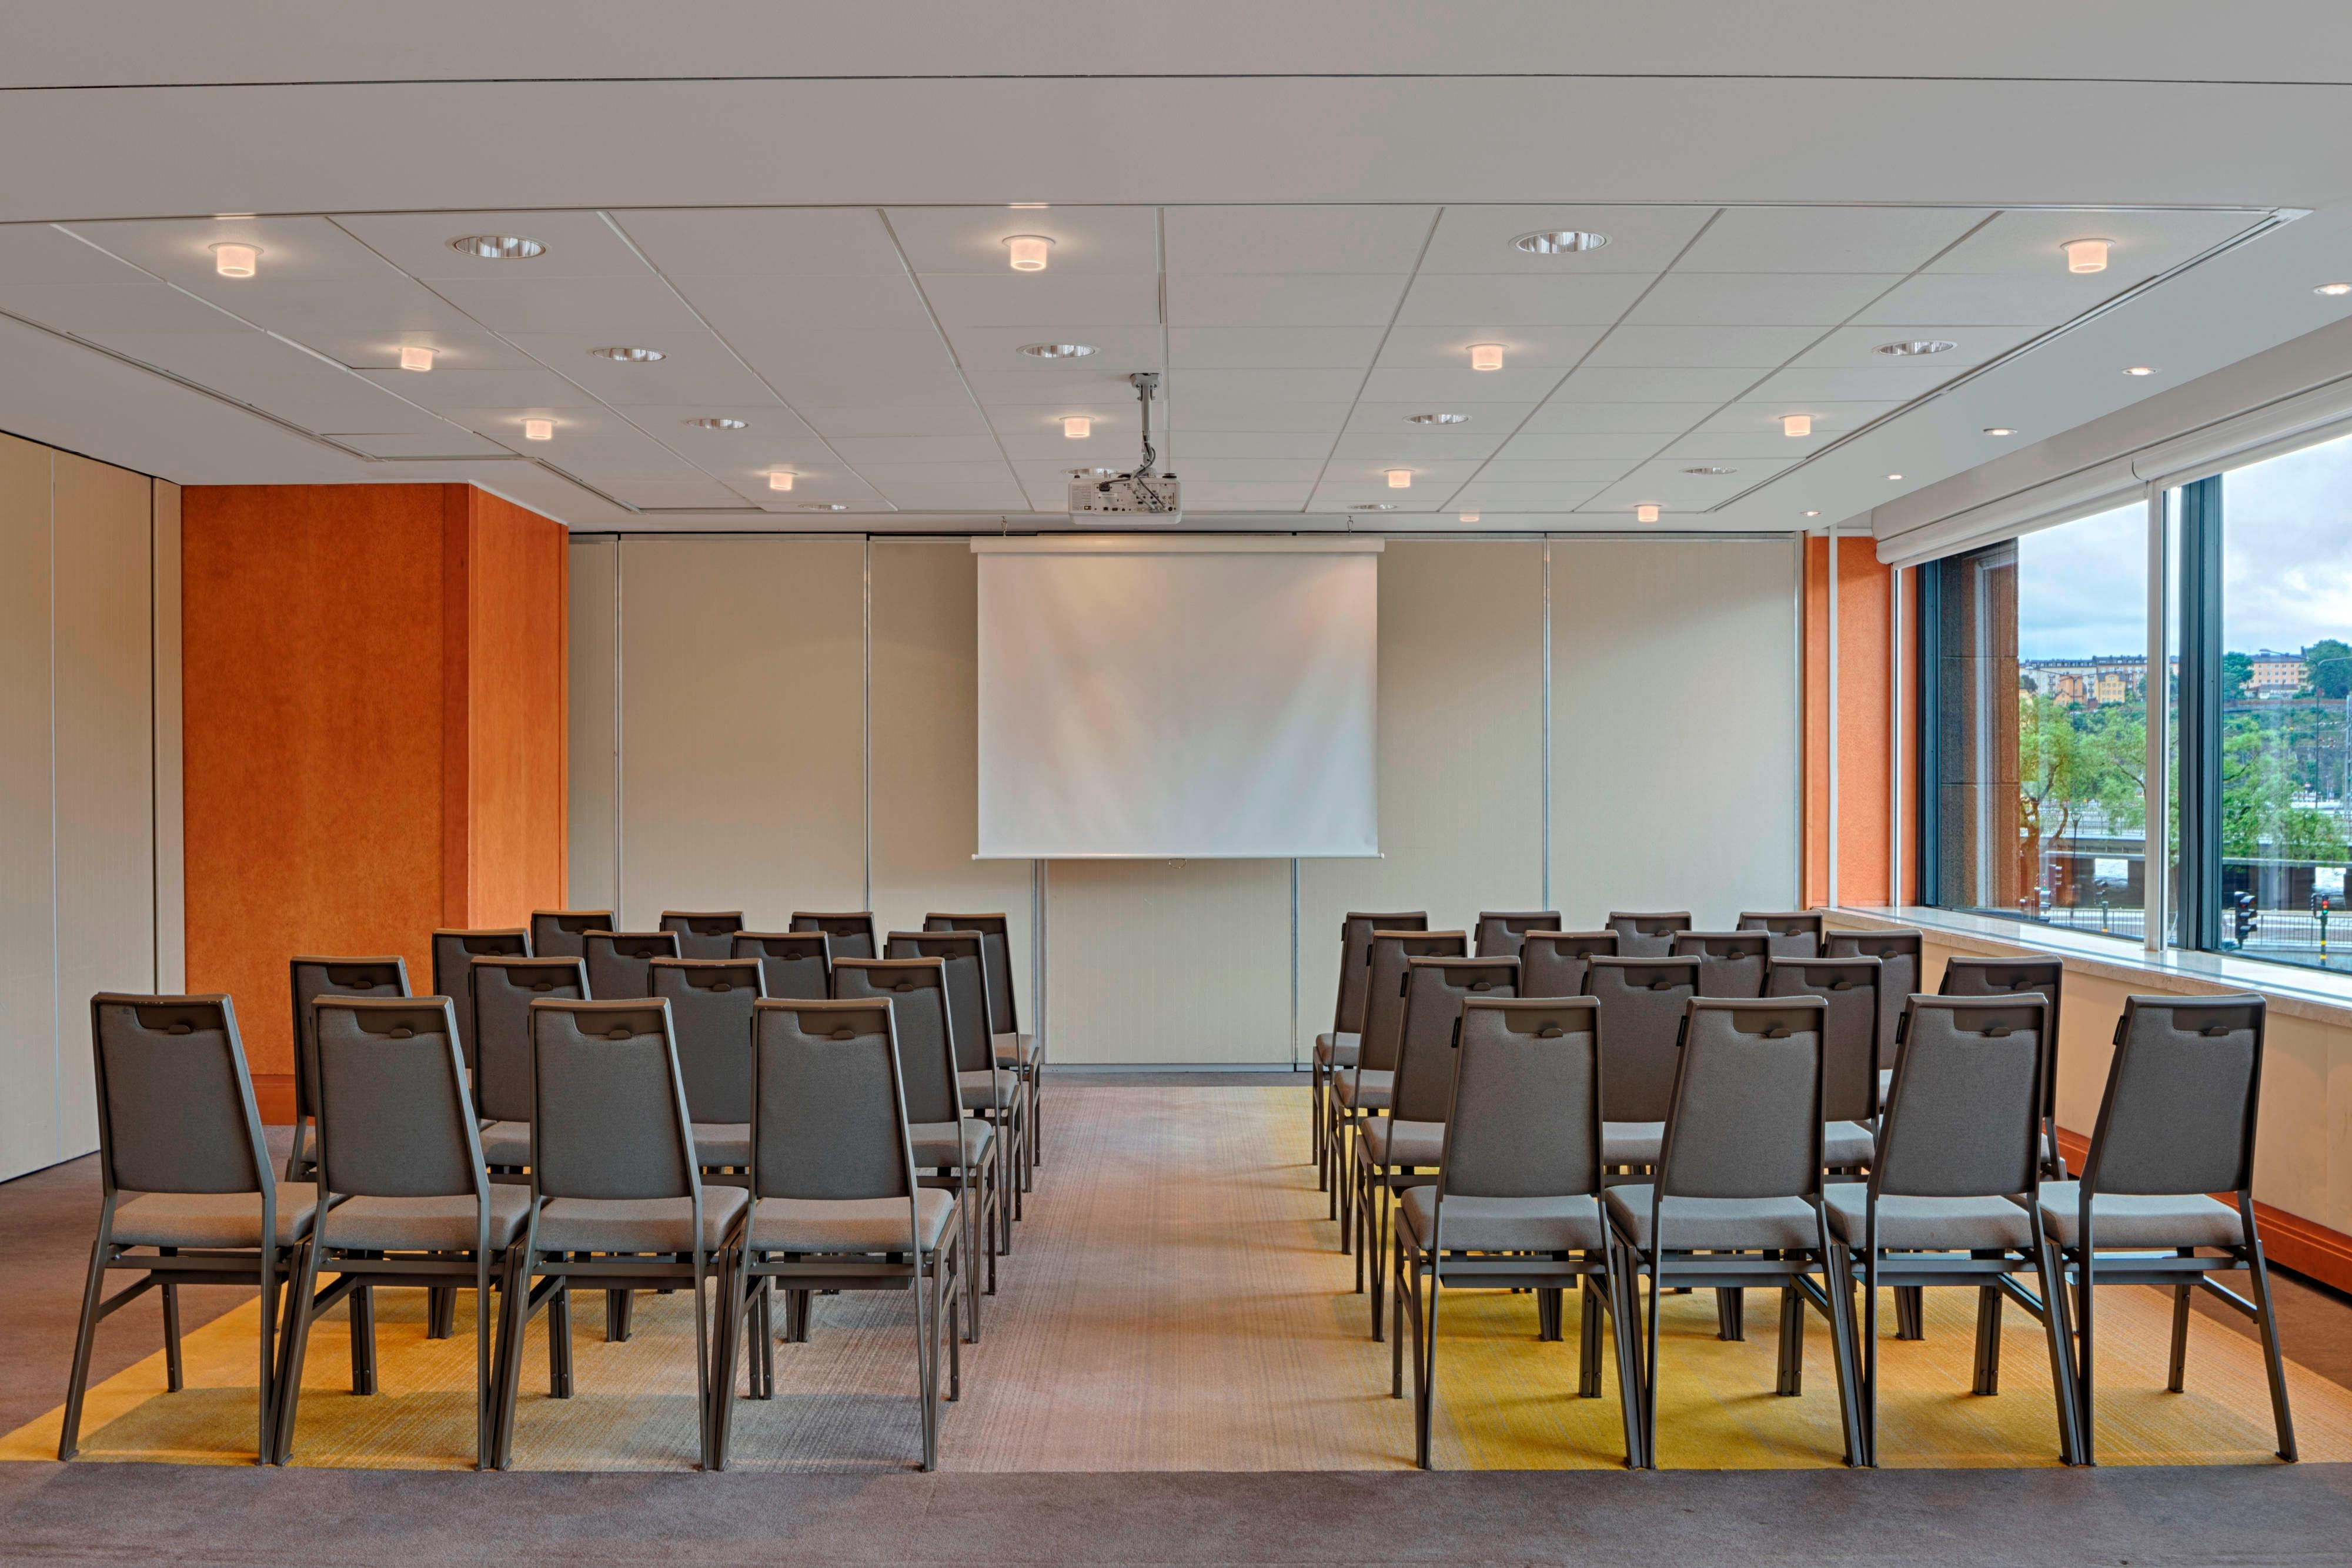 Haga Meeting Room -Theatre-Style Meeting